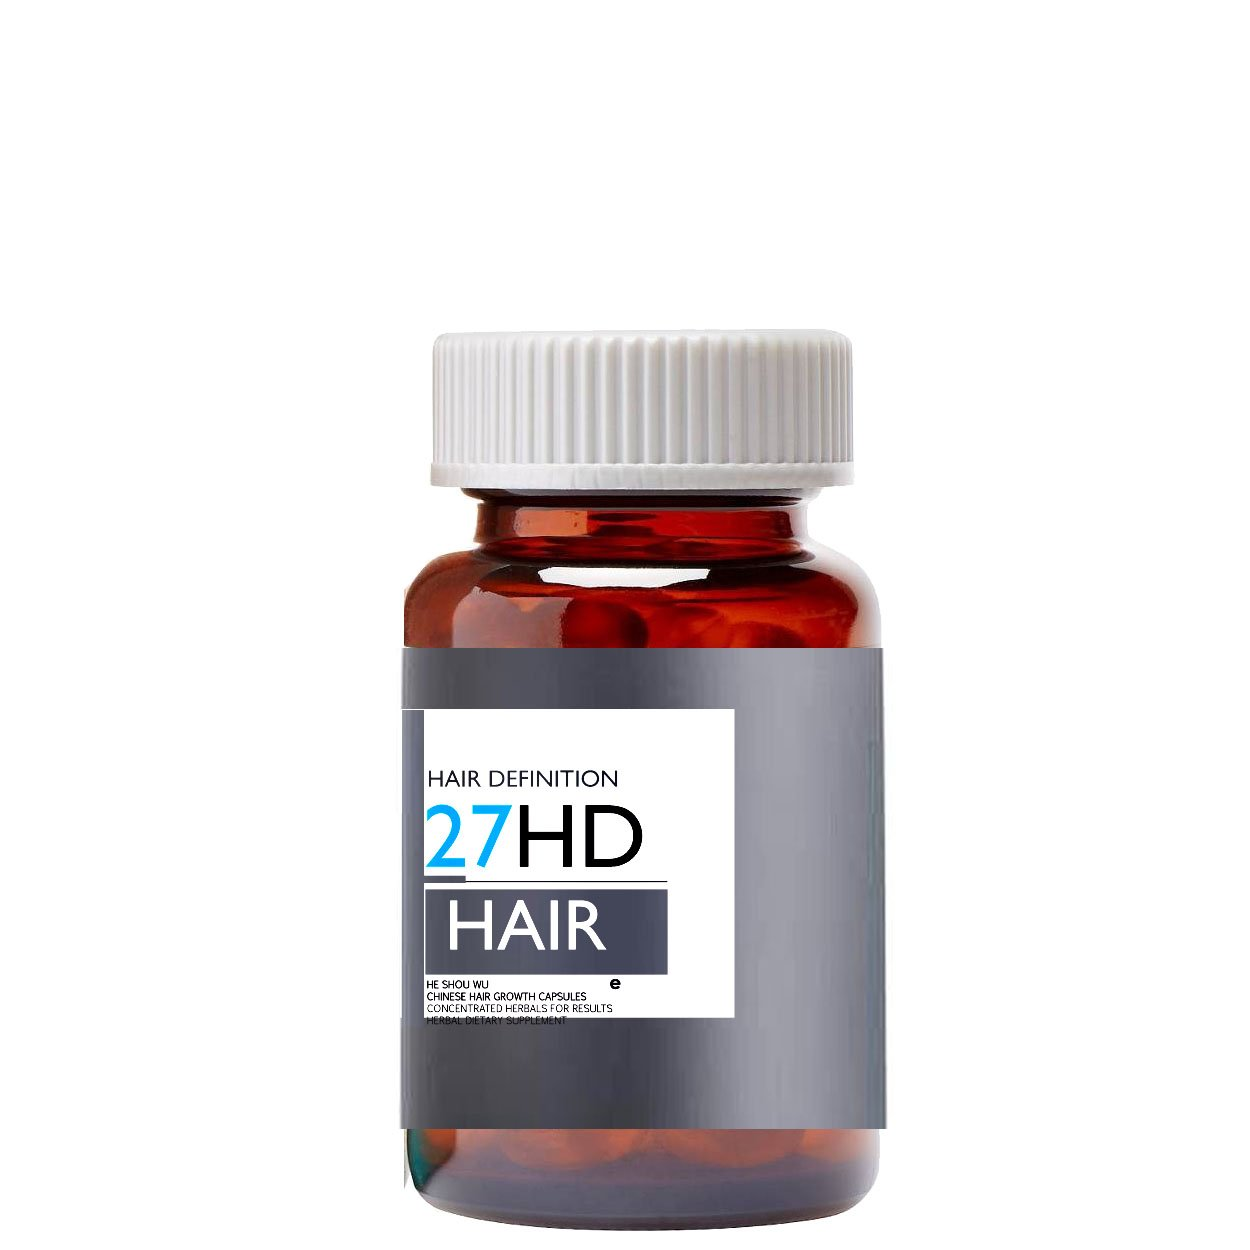 He Shou Wu Chinese Super Hair Growth Capsules